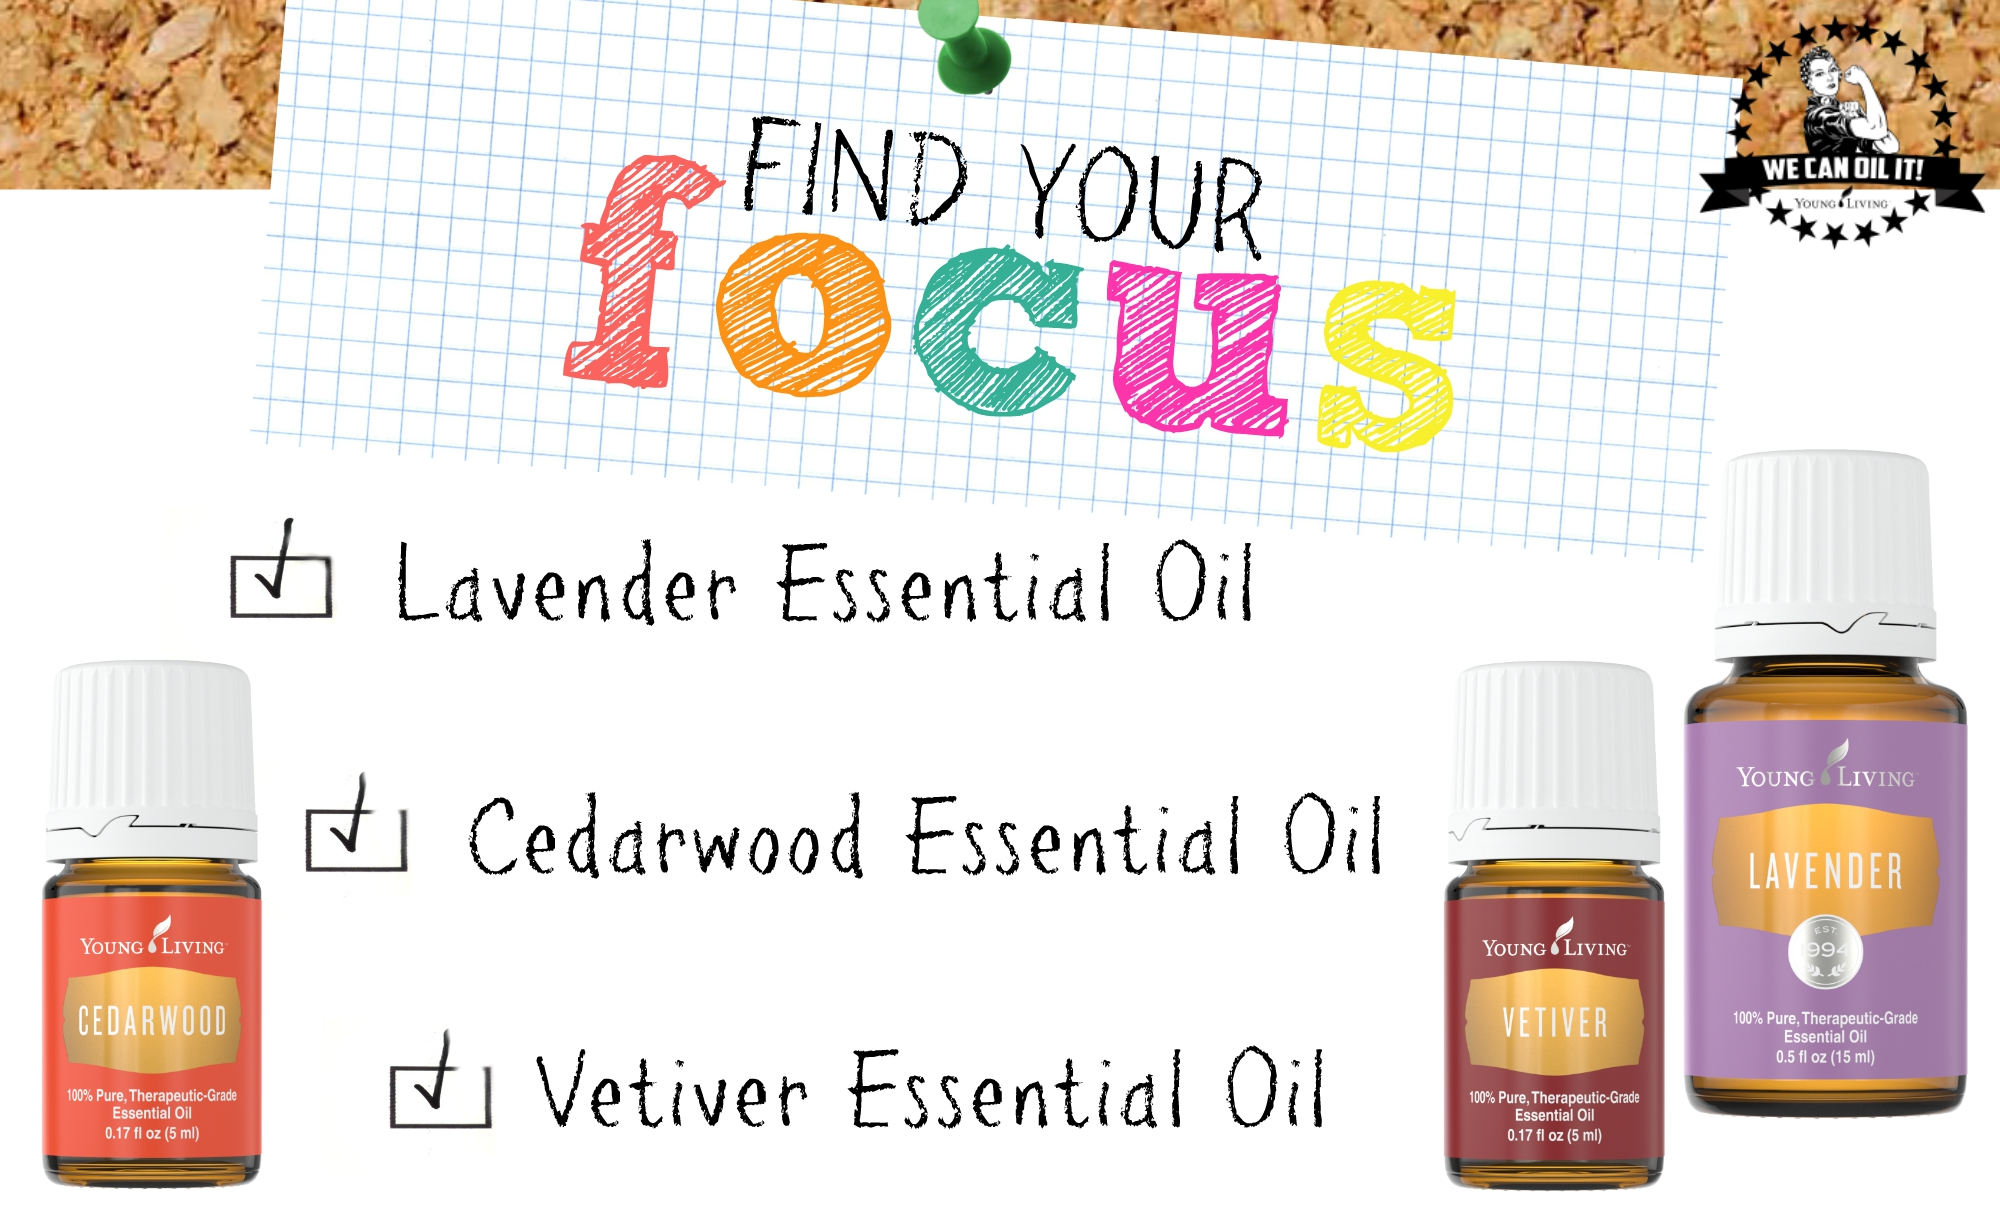 06.1 Focus - Lavender, Cedarwood, Vetiver